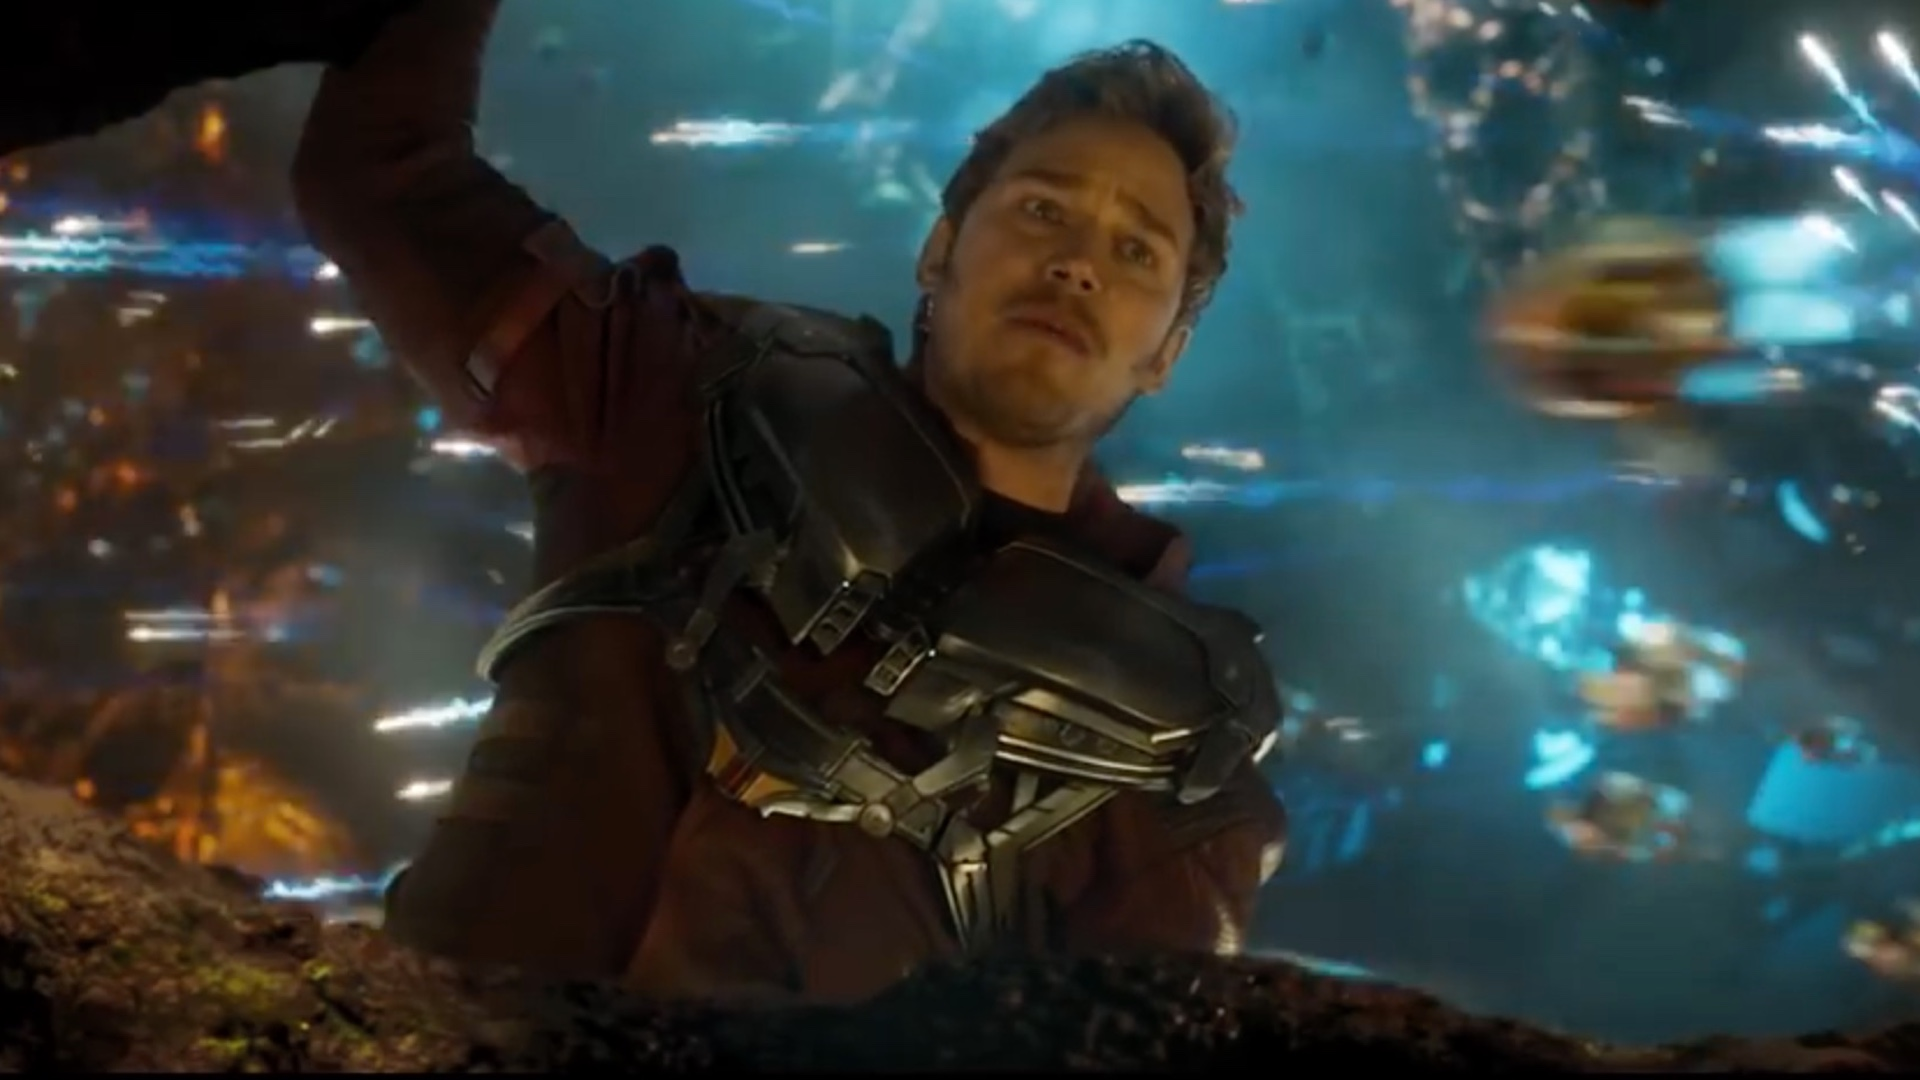 chris-pratt-confirms-james-gunns-off-the-chain-script-for-guardians-of-the-galaxy-vol-3-will-be-used-social.jpg